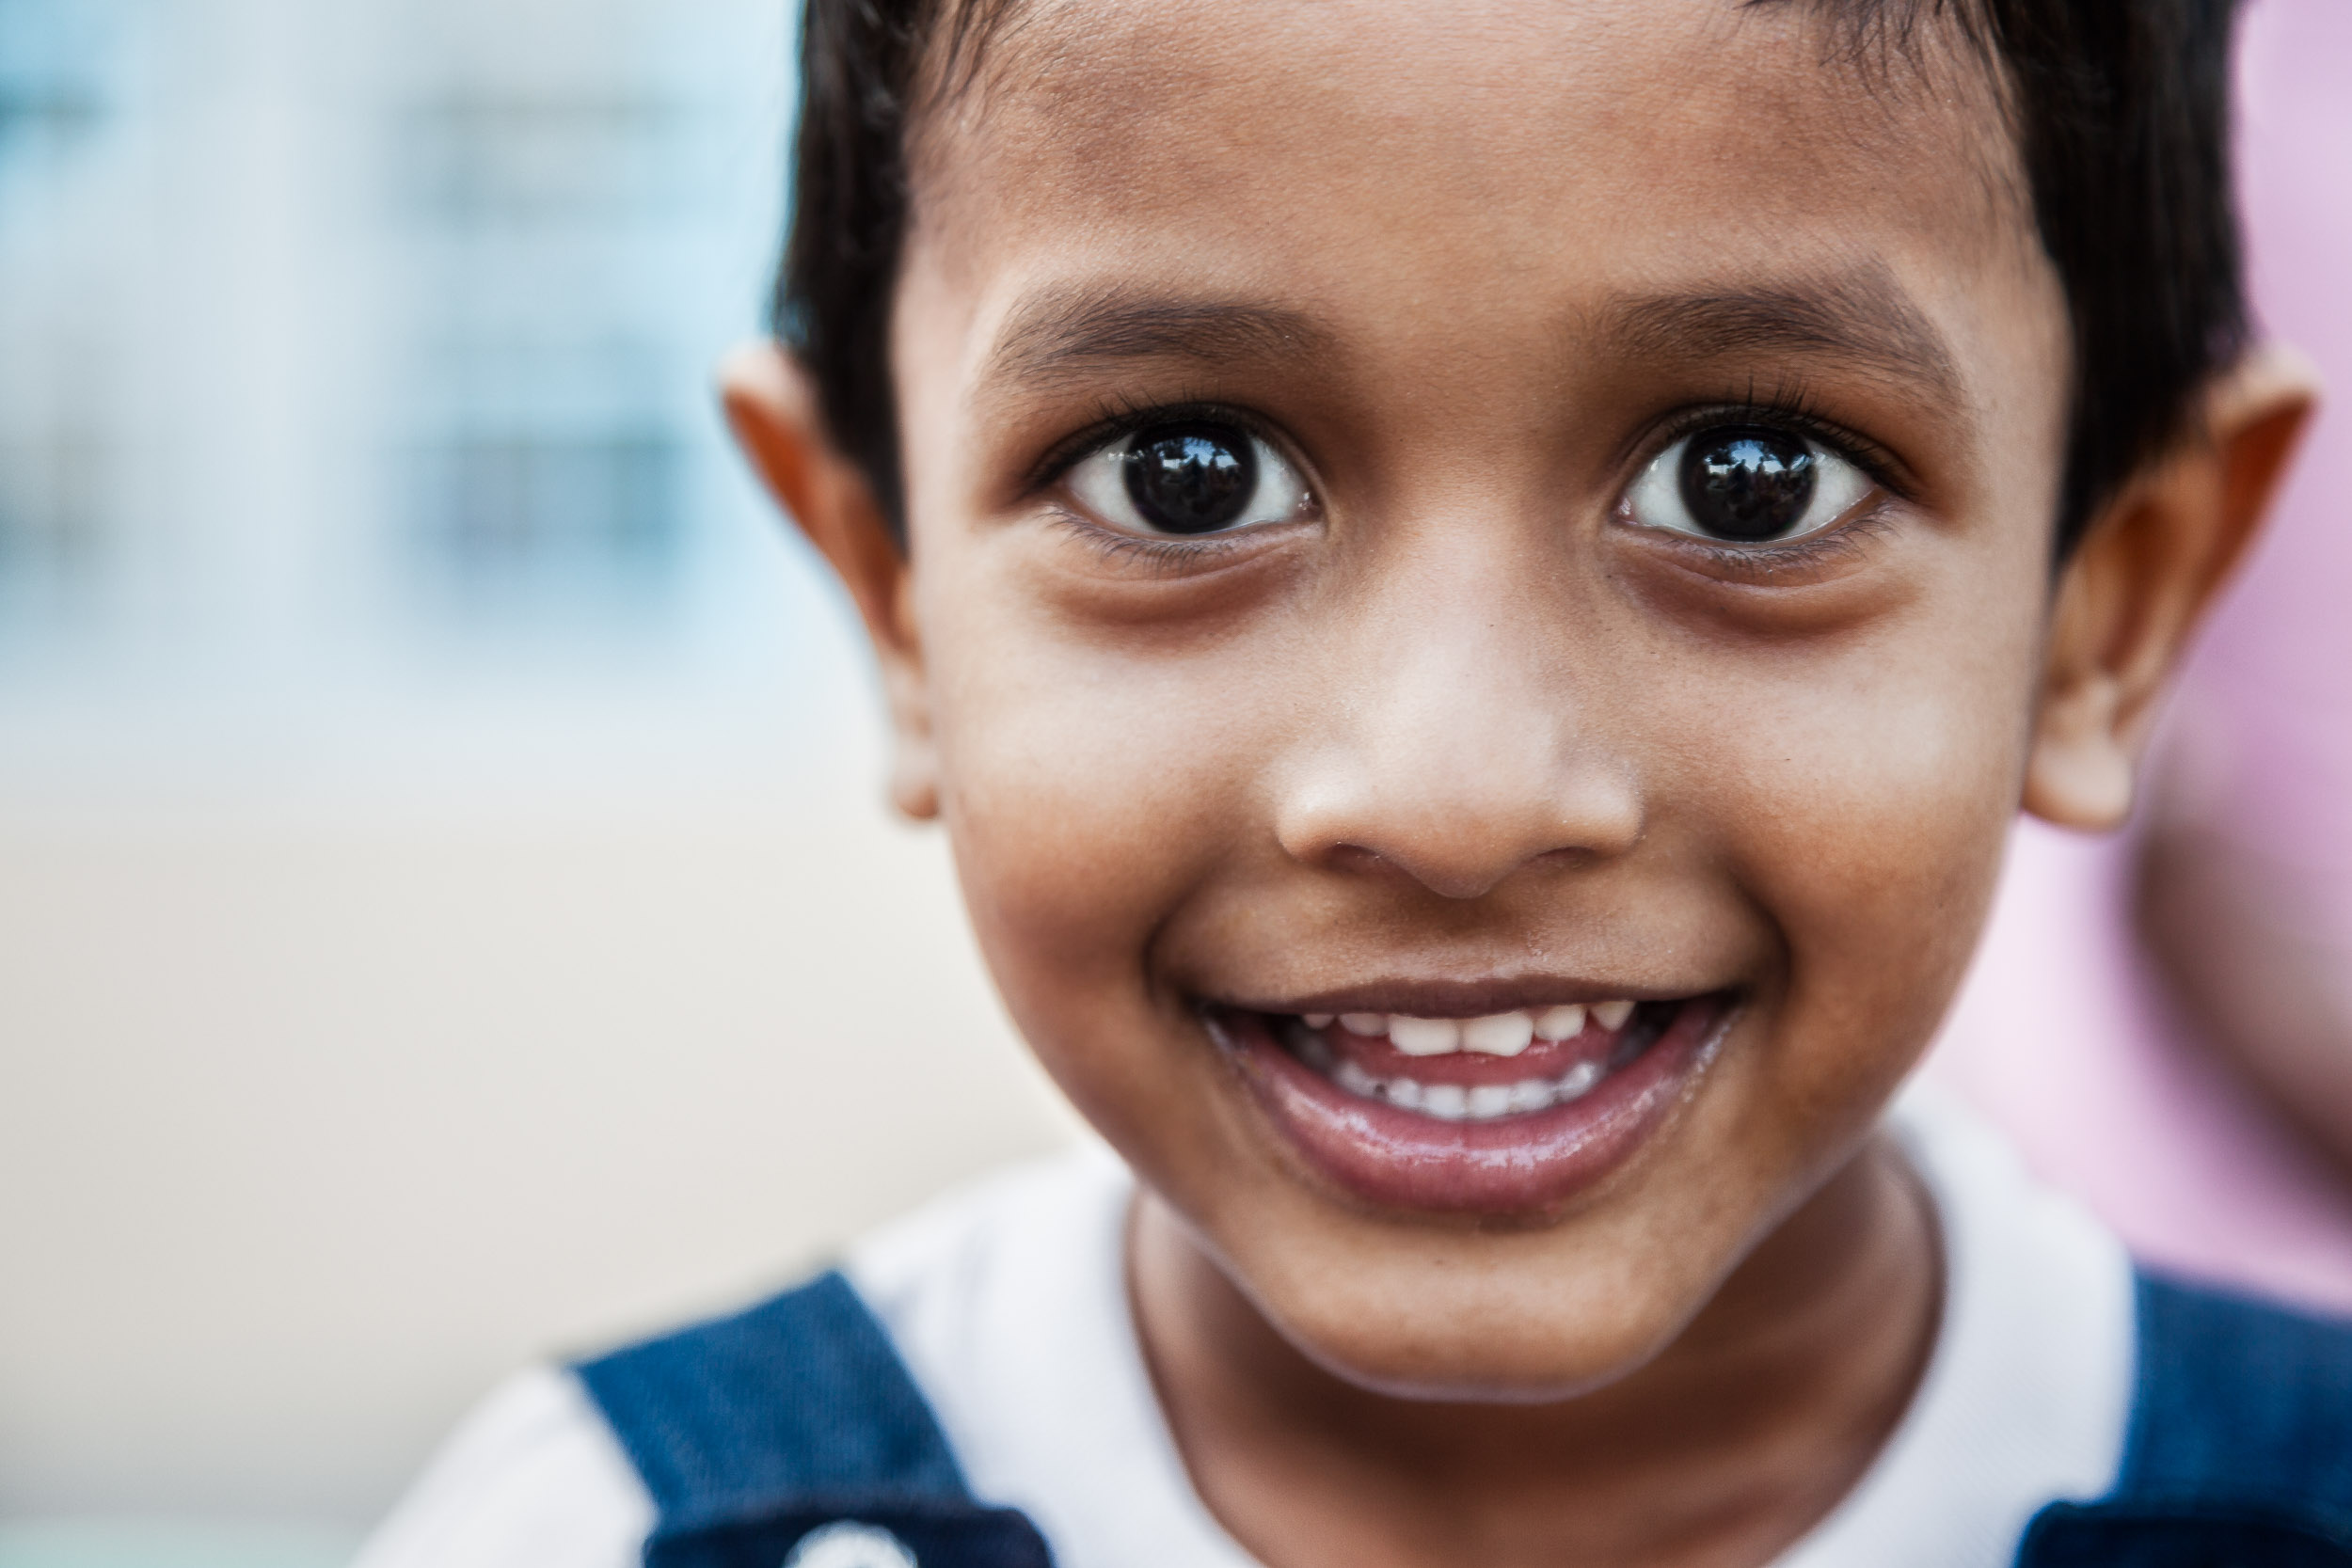 An expression of interest is alive in the eyes of this    young boy    on the outskirts of    Chennai    in Tamil Nadu,    India   .